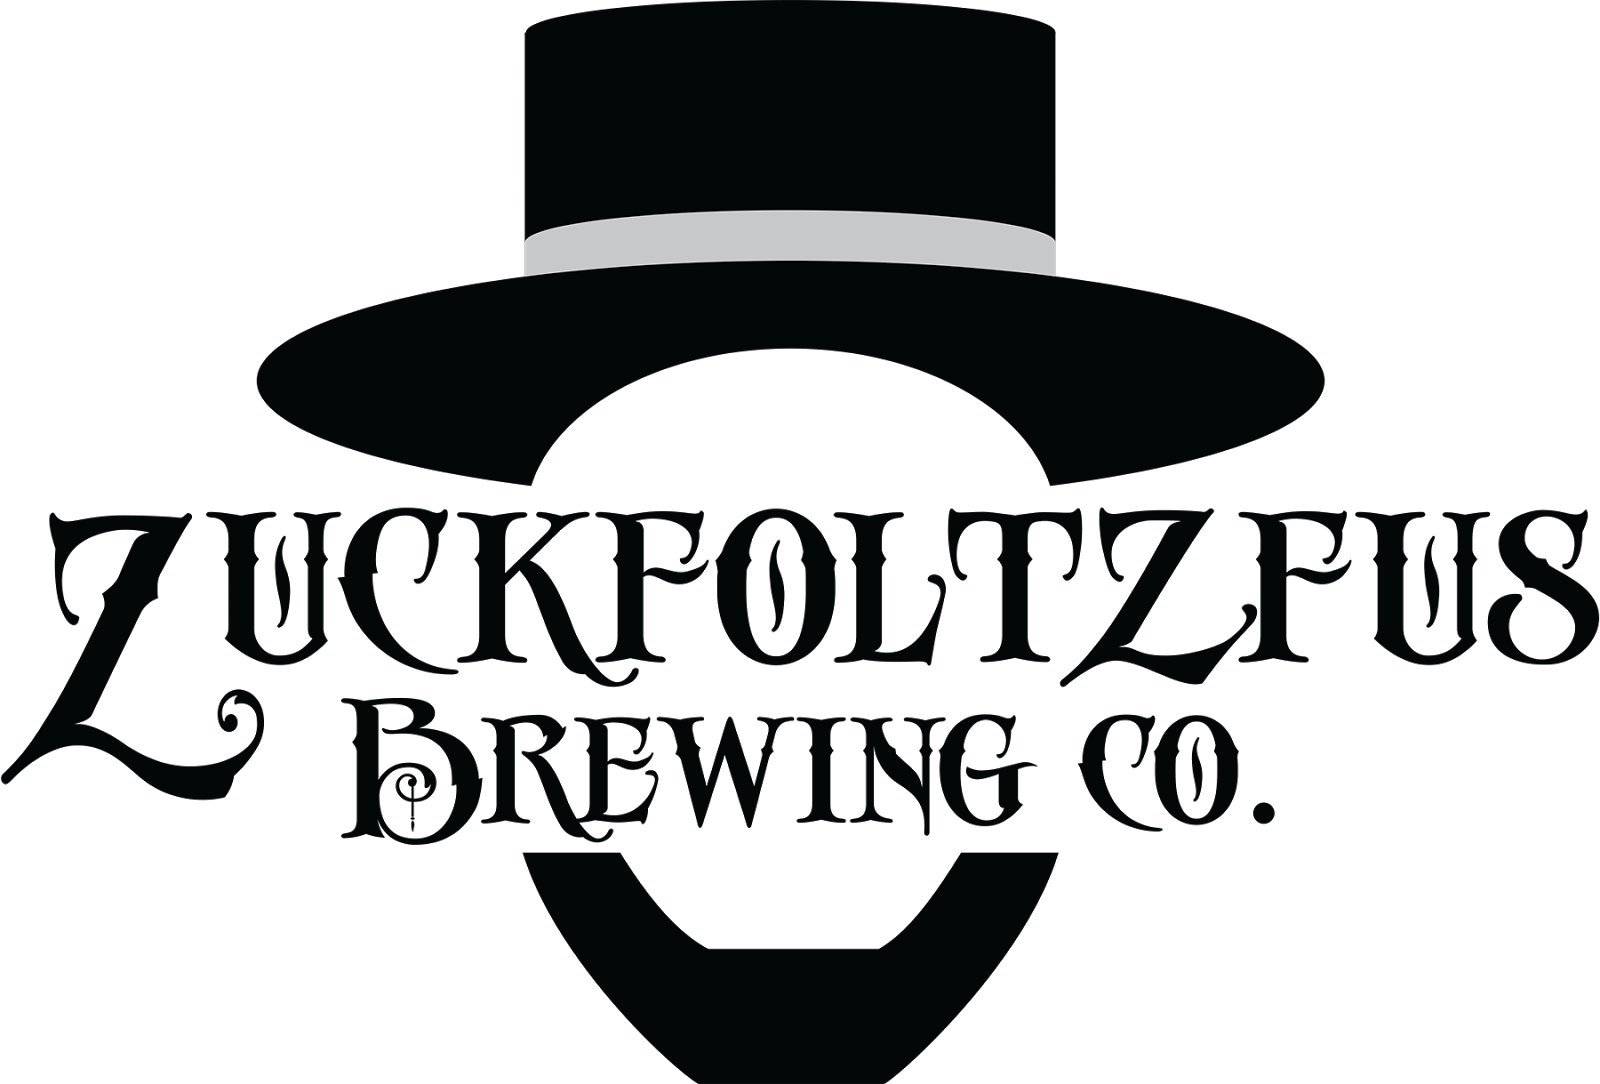 Zuckfoltzfus Brewing Co.